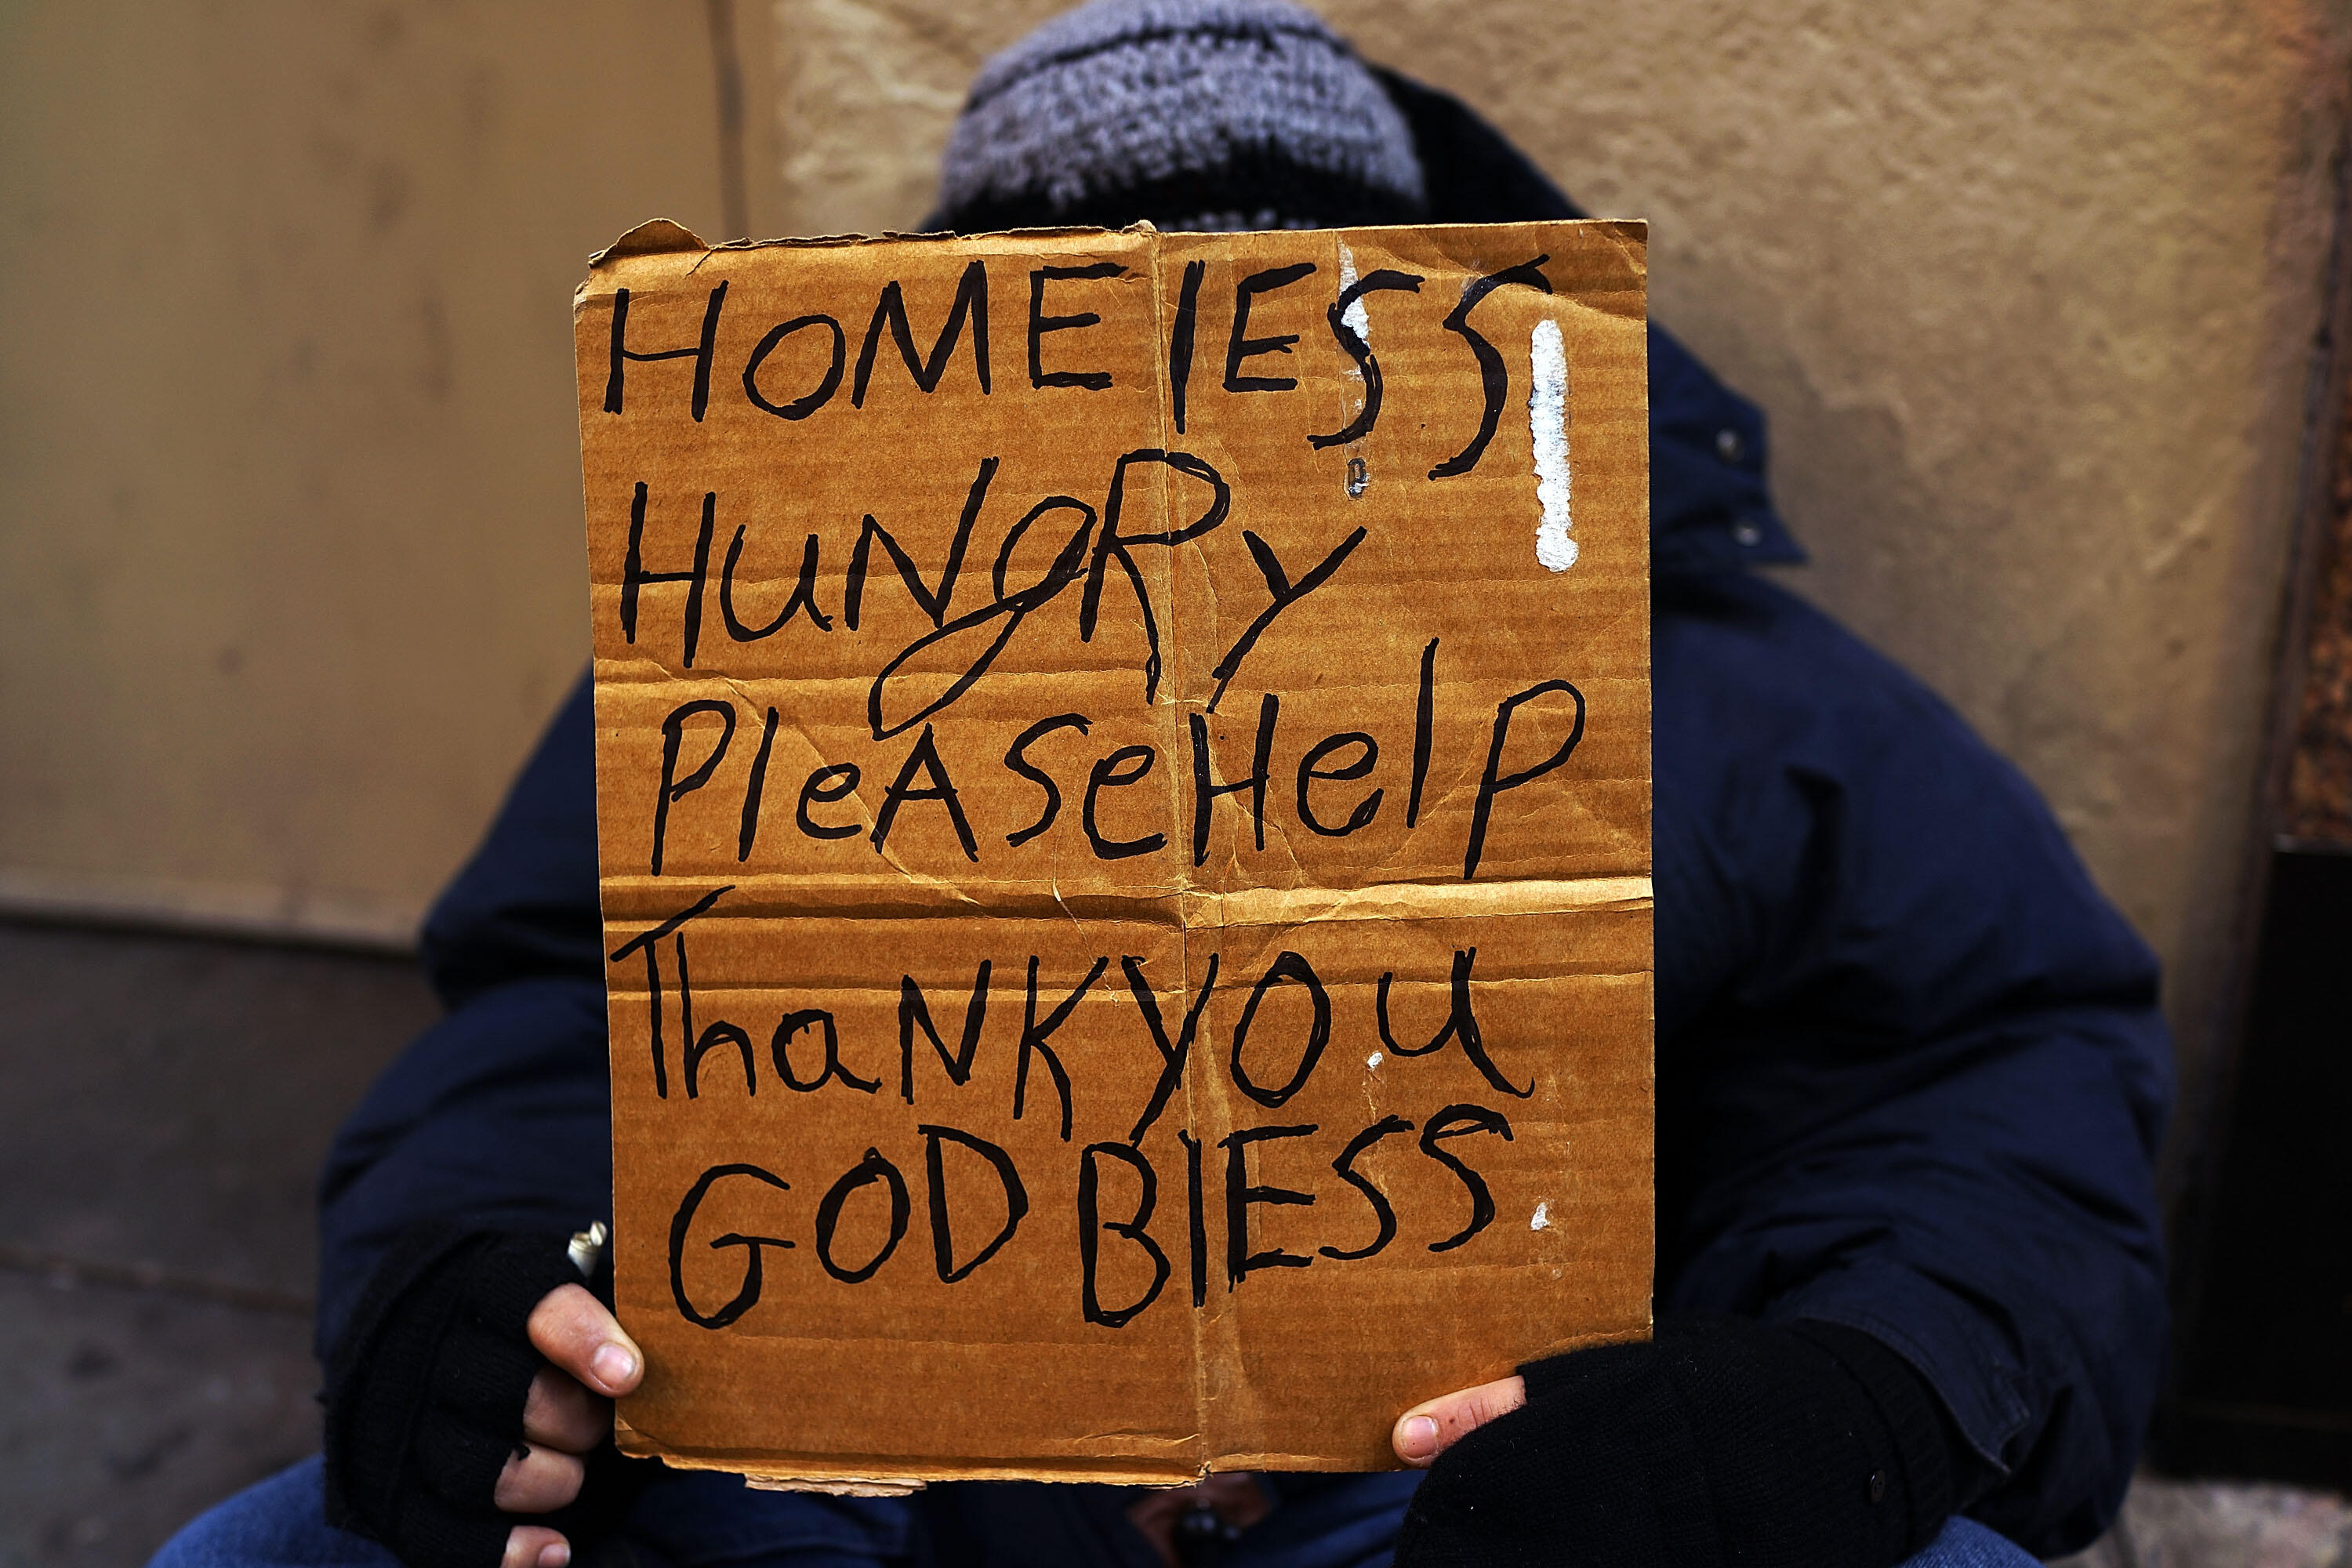 NEW YORK, NY - DECEMBER 04:  A person in economic difficulty holds a homemade sign asking for money along a Manhattan street on December 4, 2013 in New York City.  According to a recent study by the by the United States Department of Housing and Urban Dev